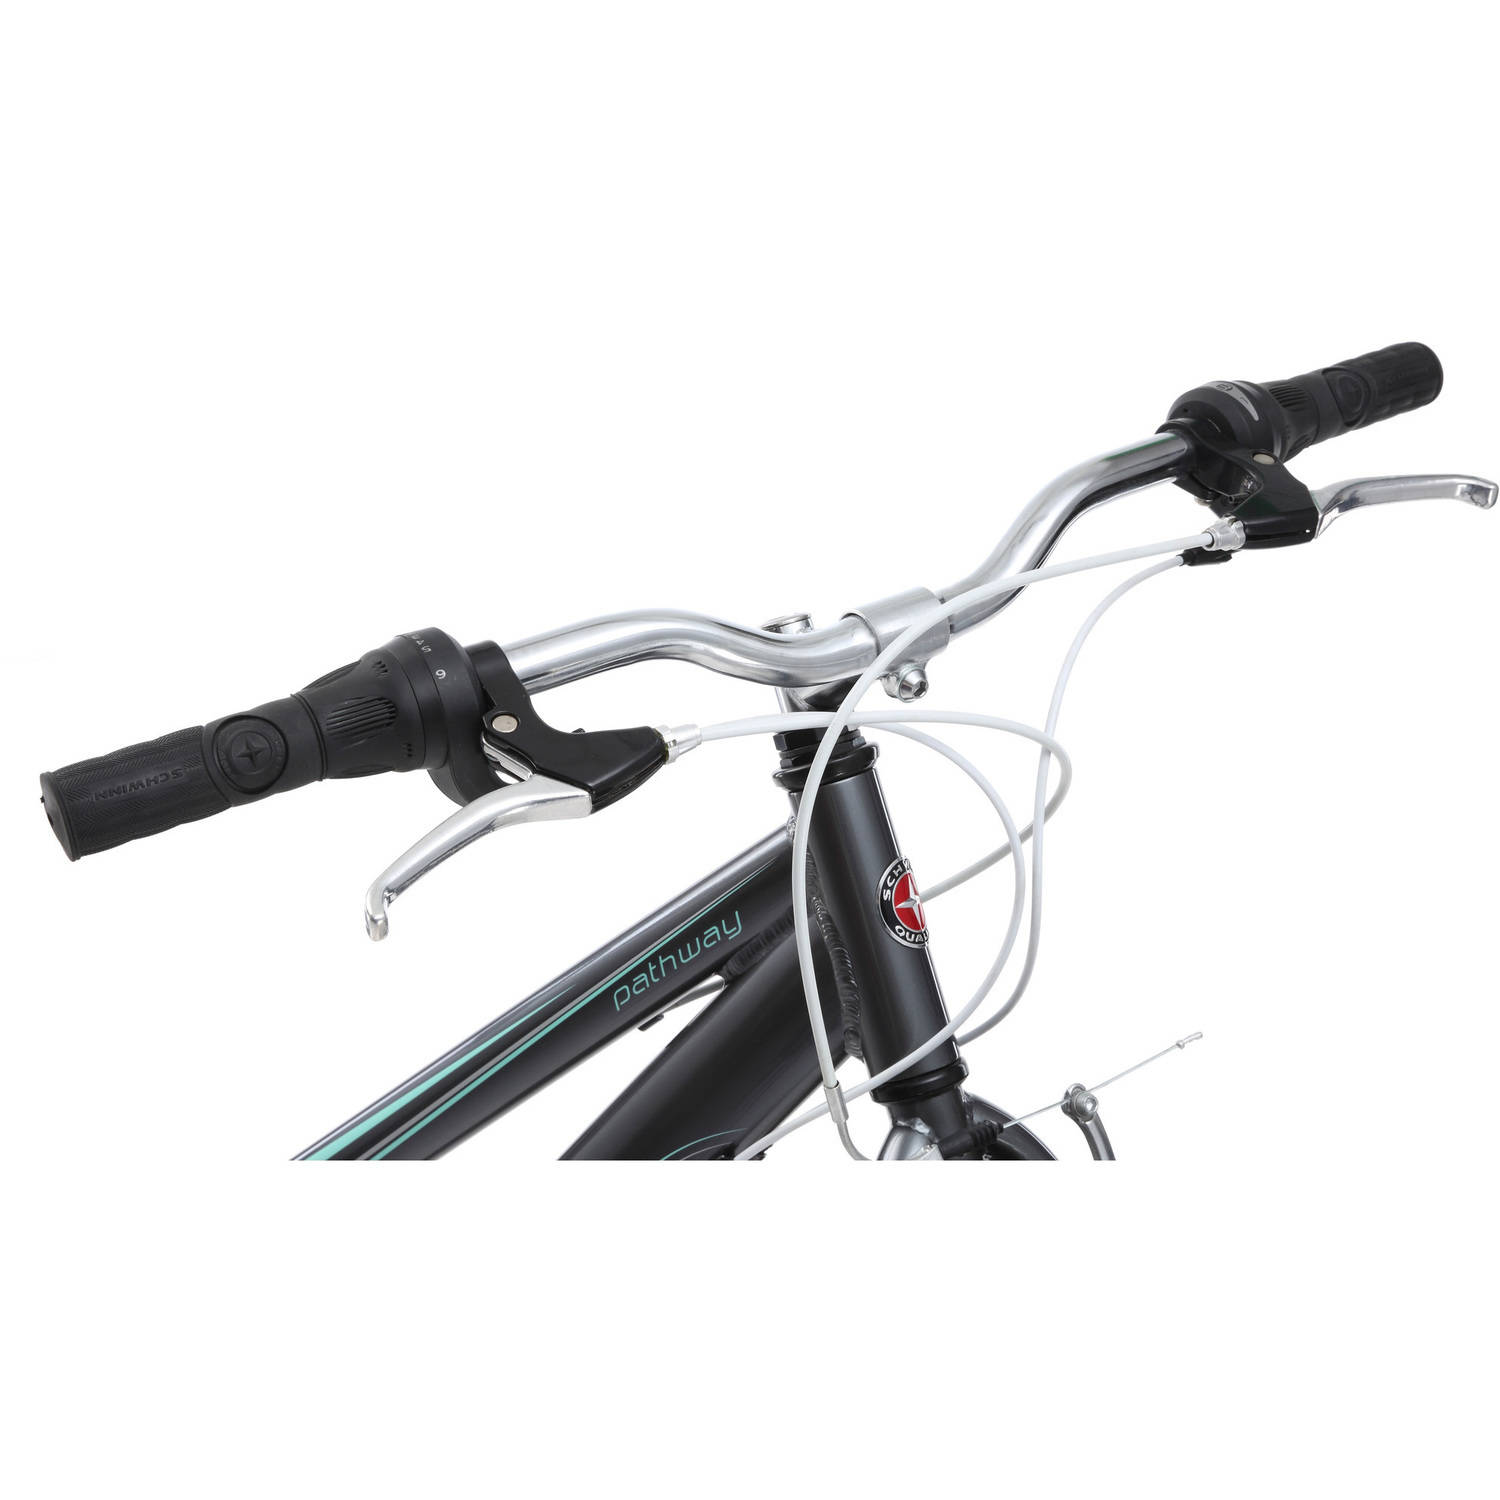 63a09893f 700c Schwinn Pathway Women's Multi-Use Bike - Walmart.com